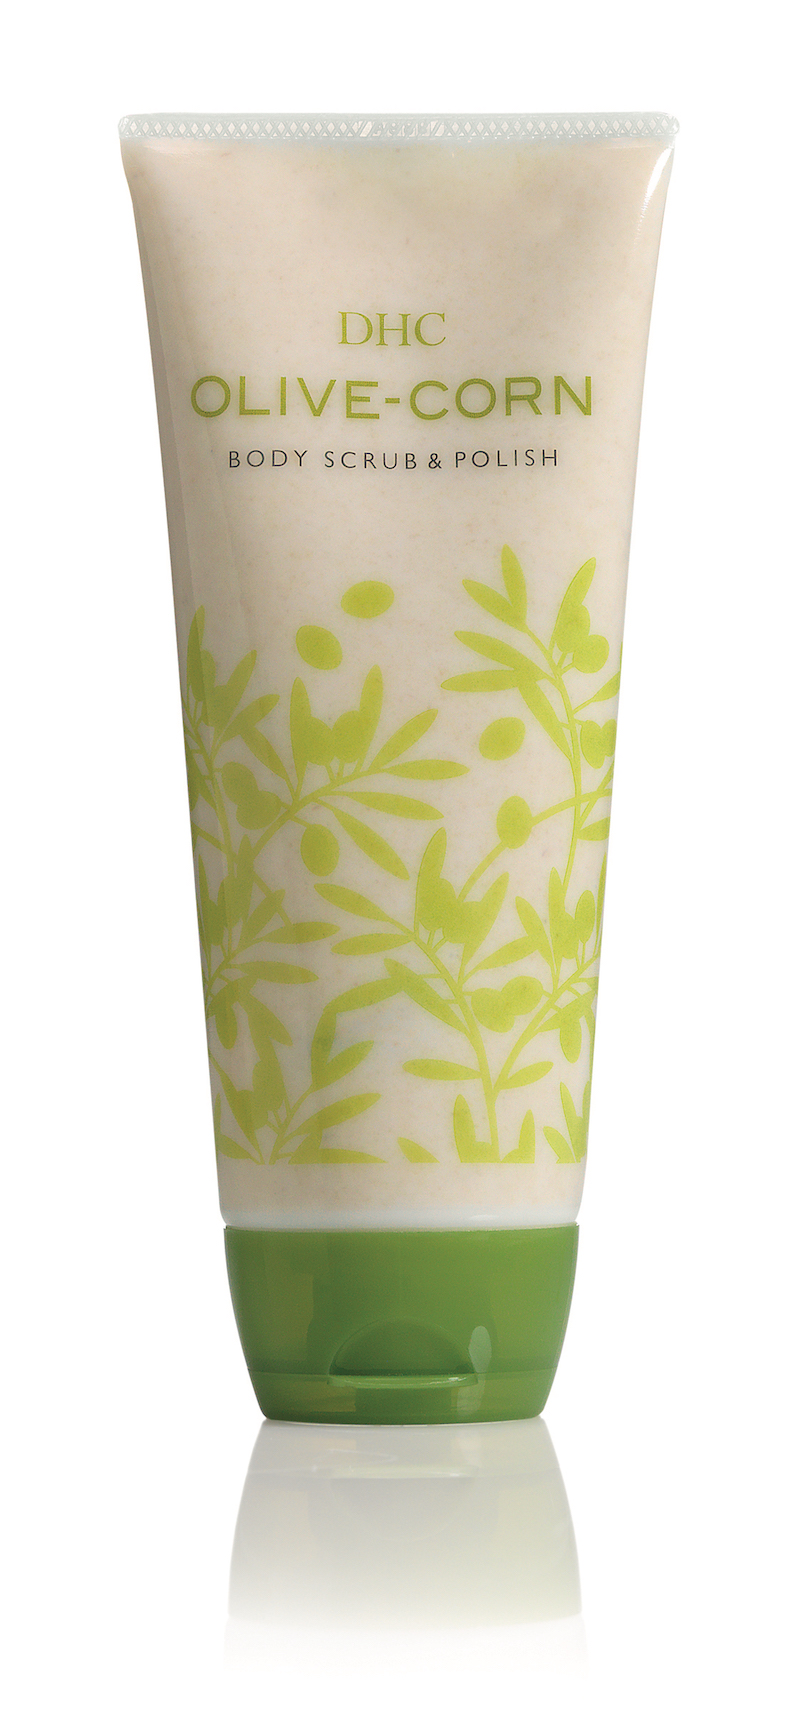 DHC Olive-Corn Body Scrub and Polish.jpg